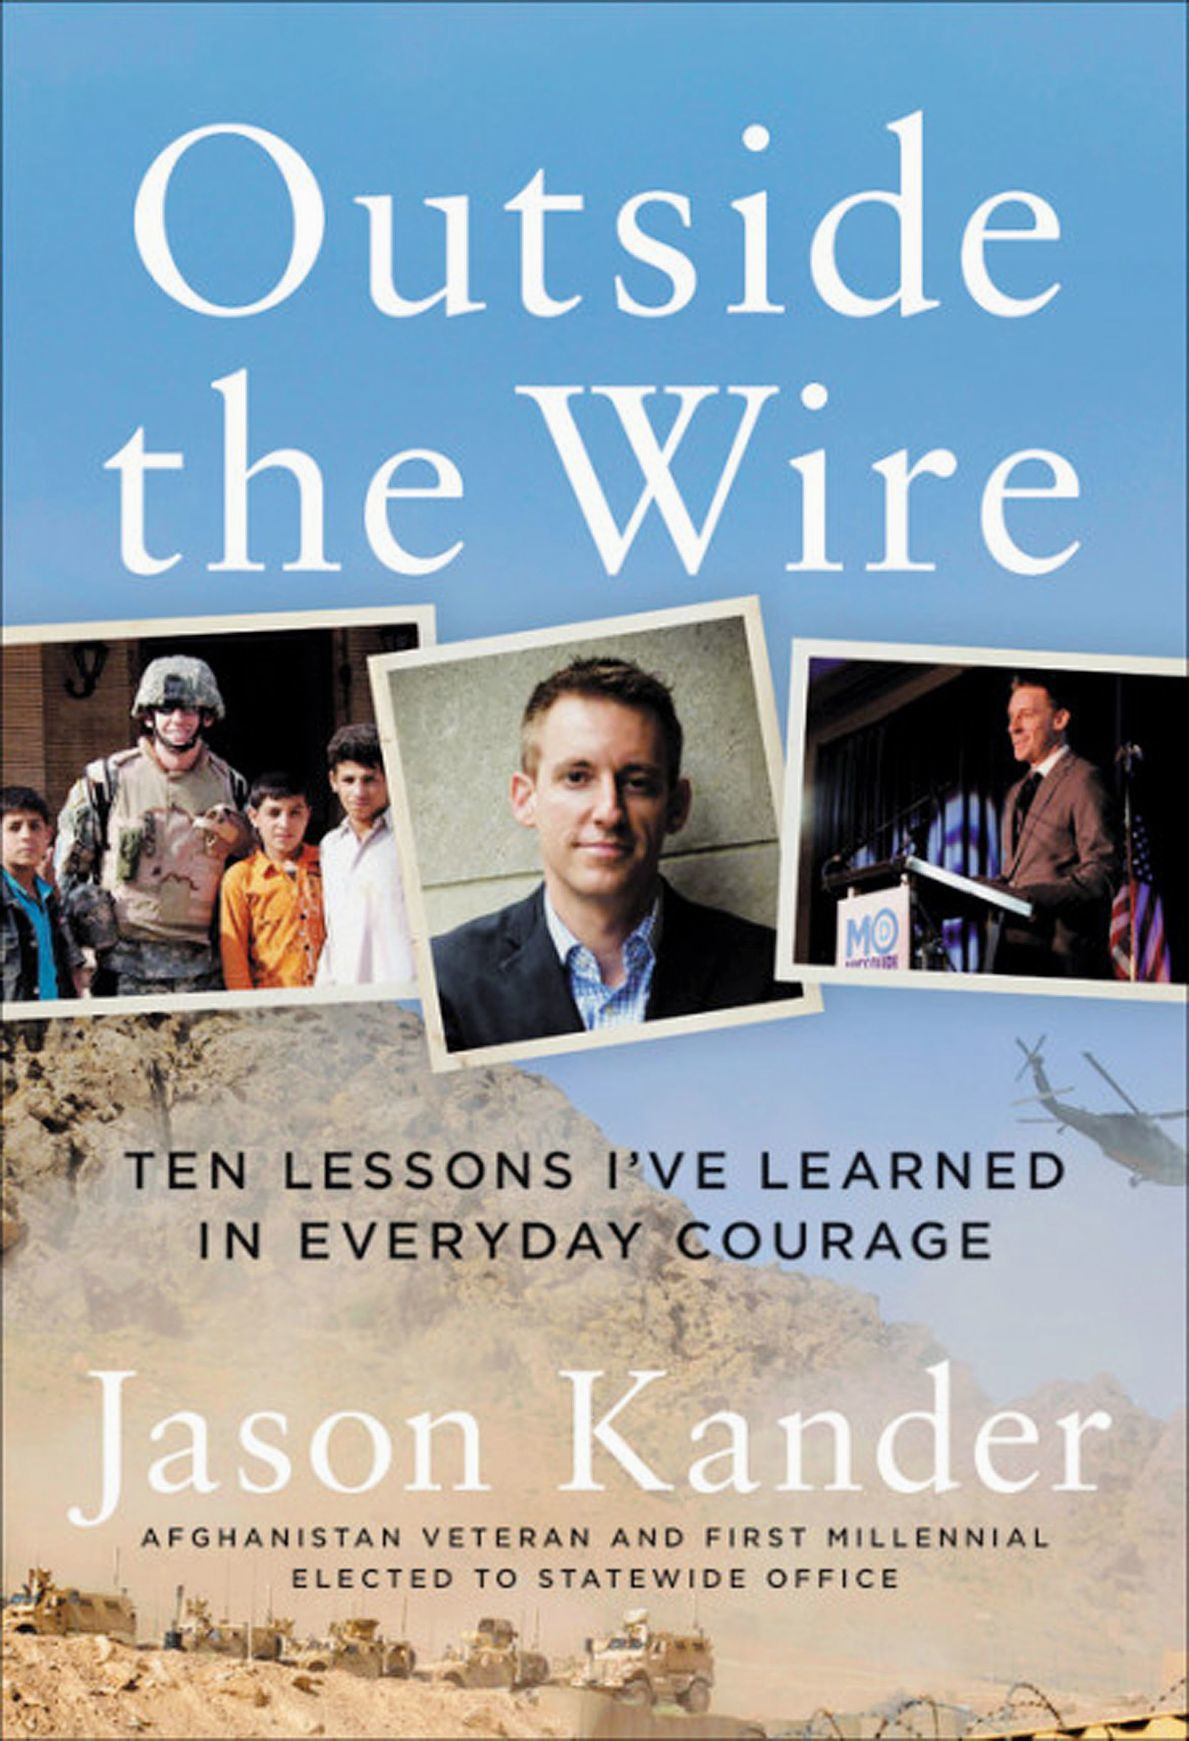 Outside the Wire, by Jason Kander